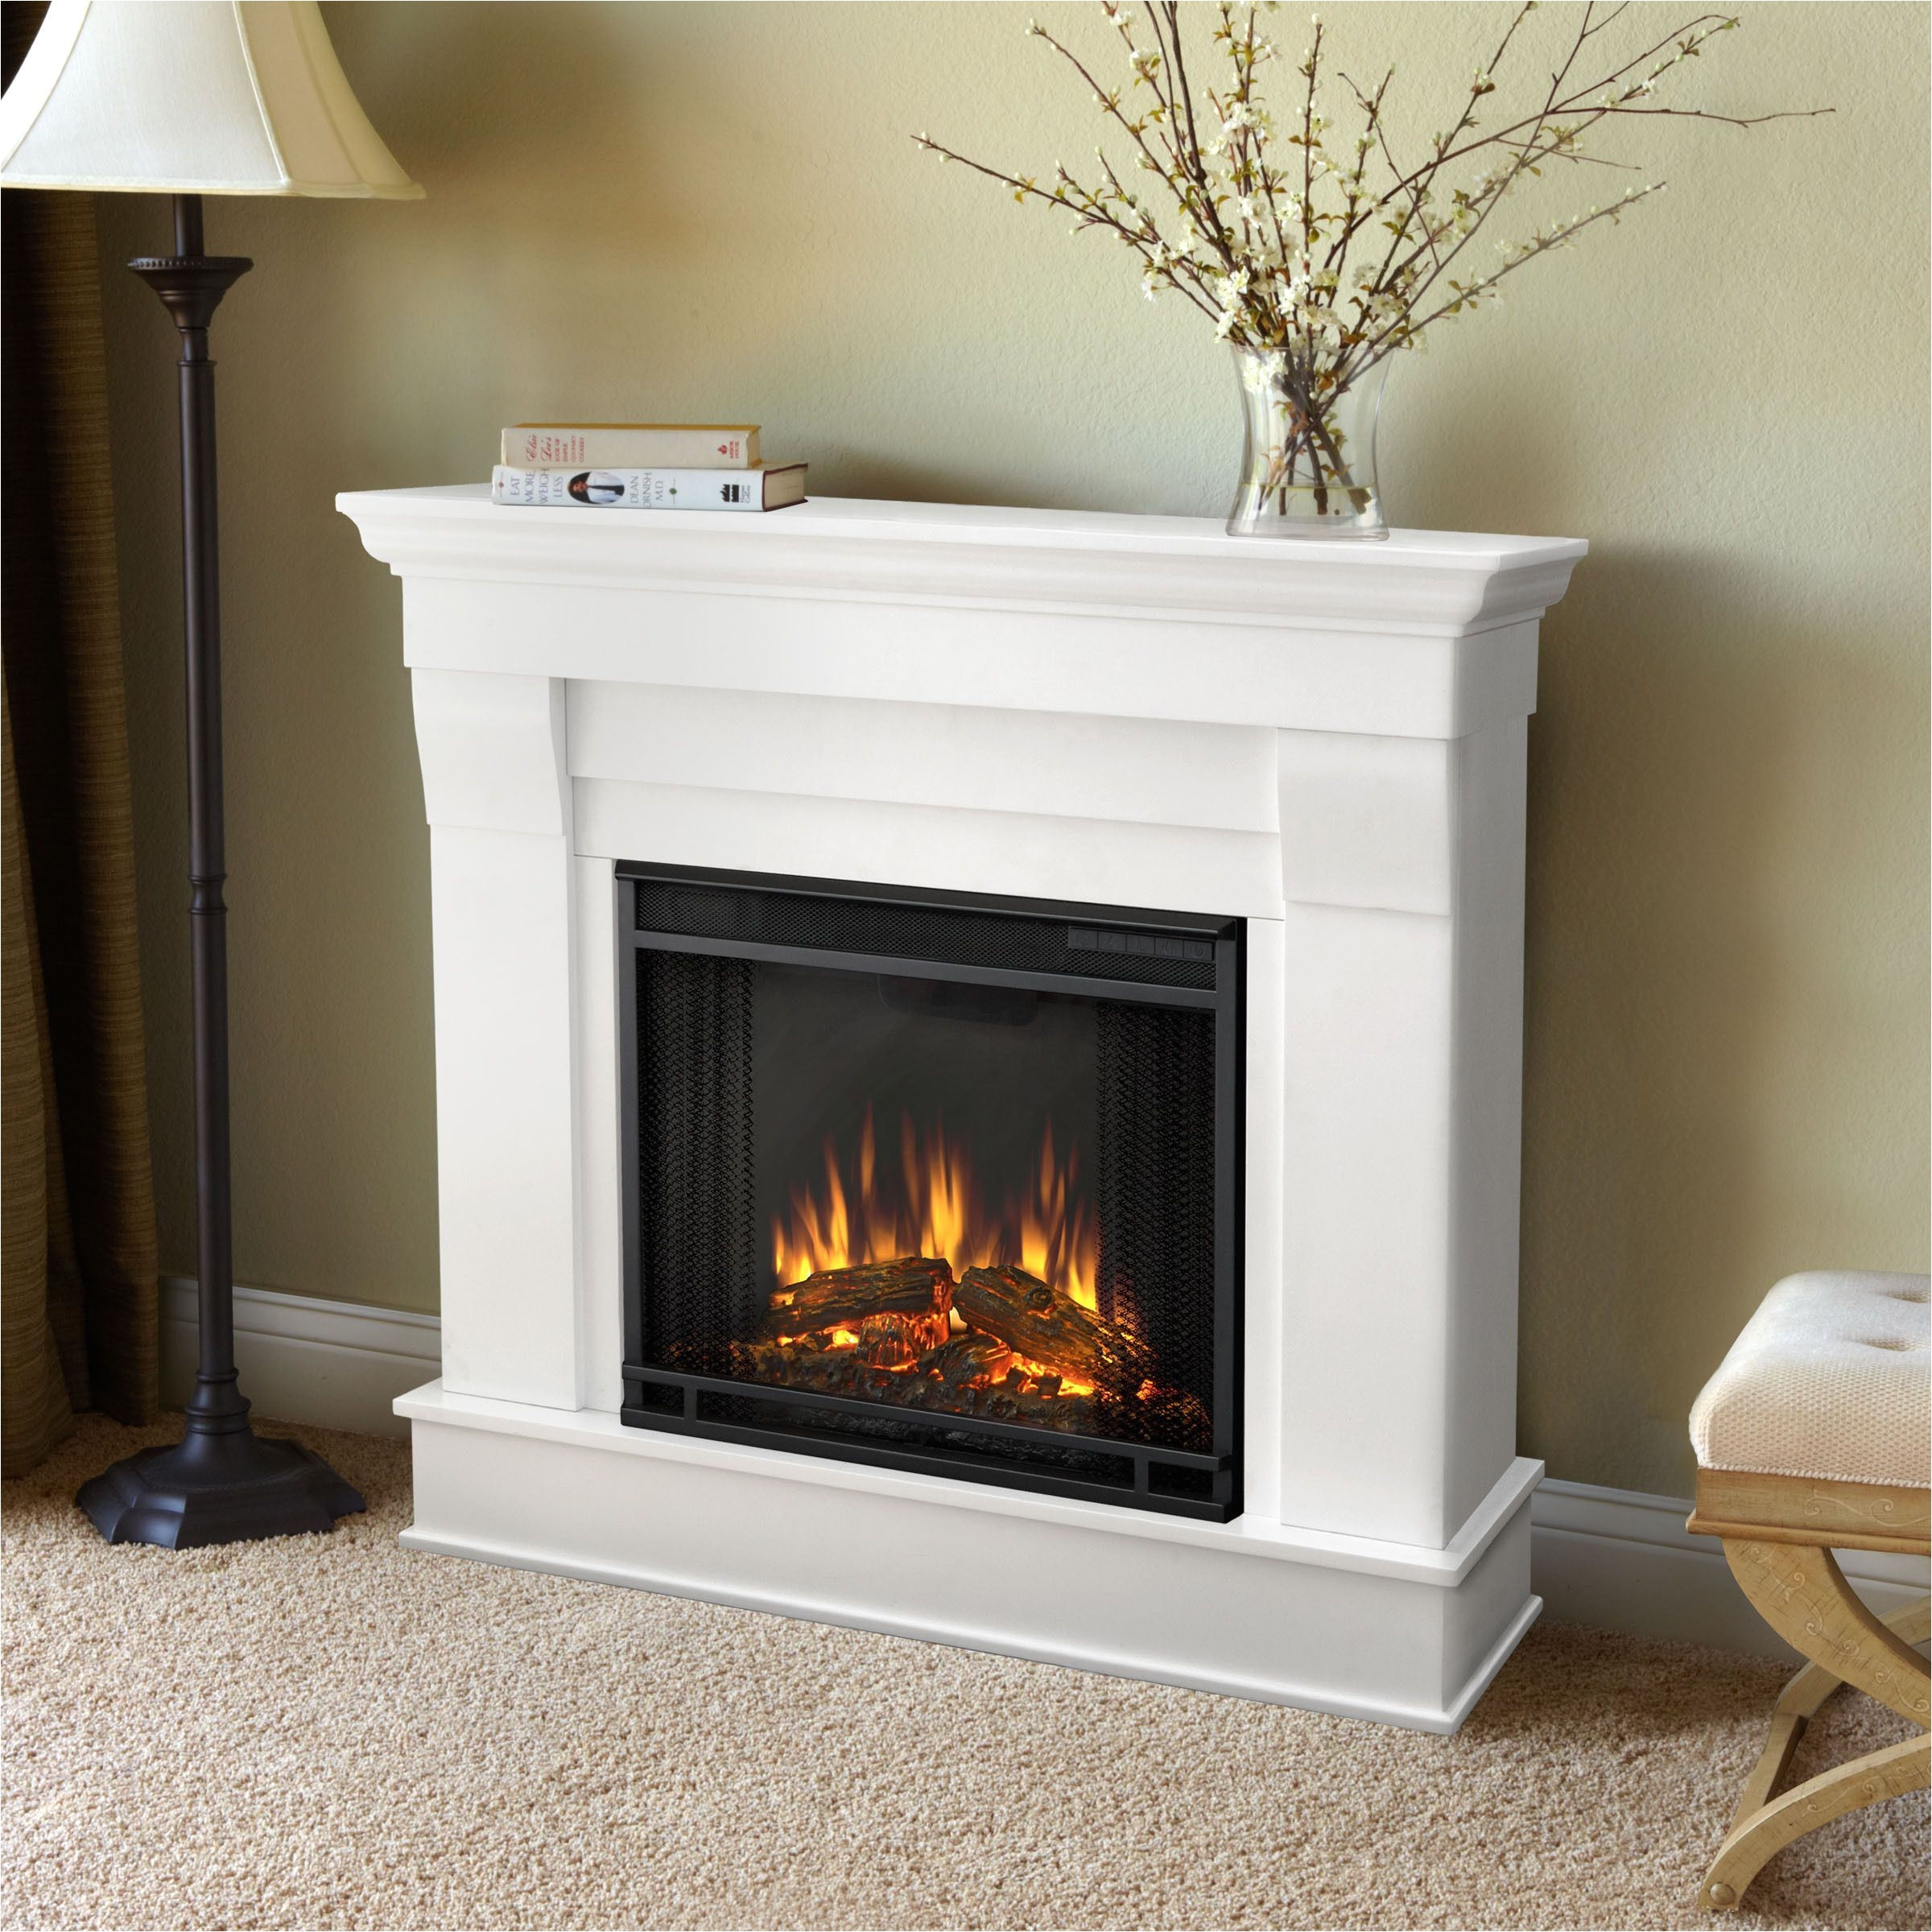 fake fire picture for fireplace real flame chateau electric fireplace fireplaces and surrounds of fake fire picture for fireplace